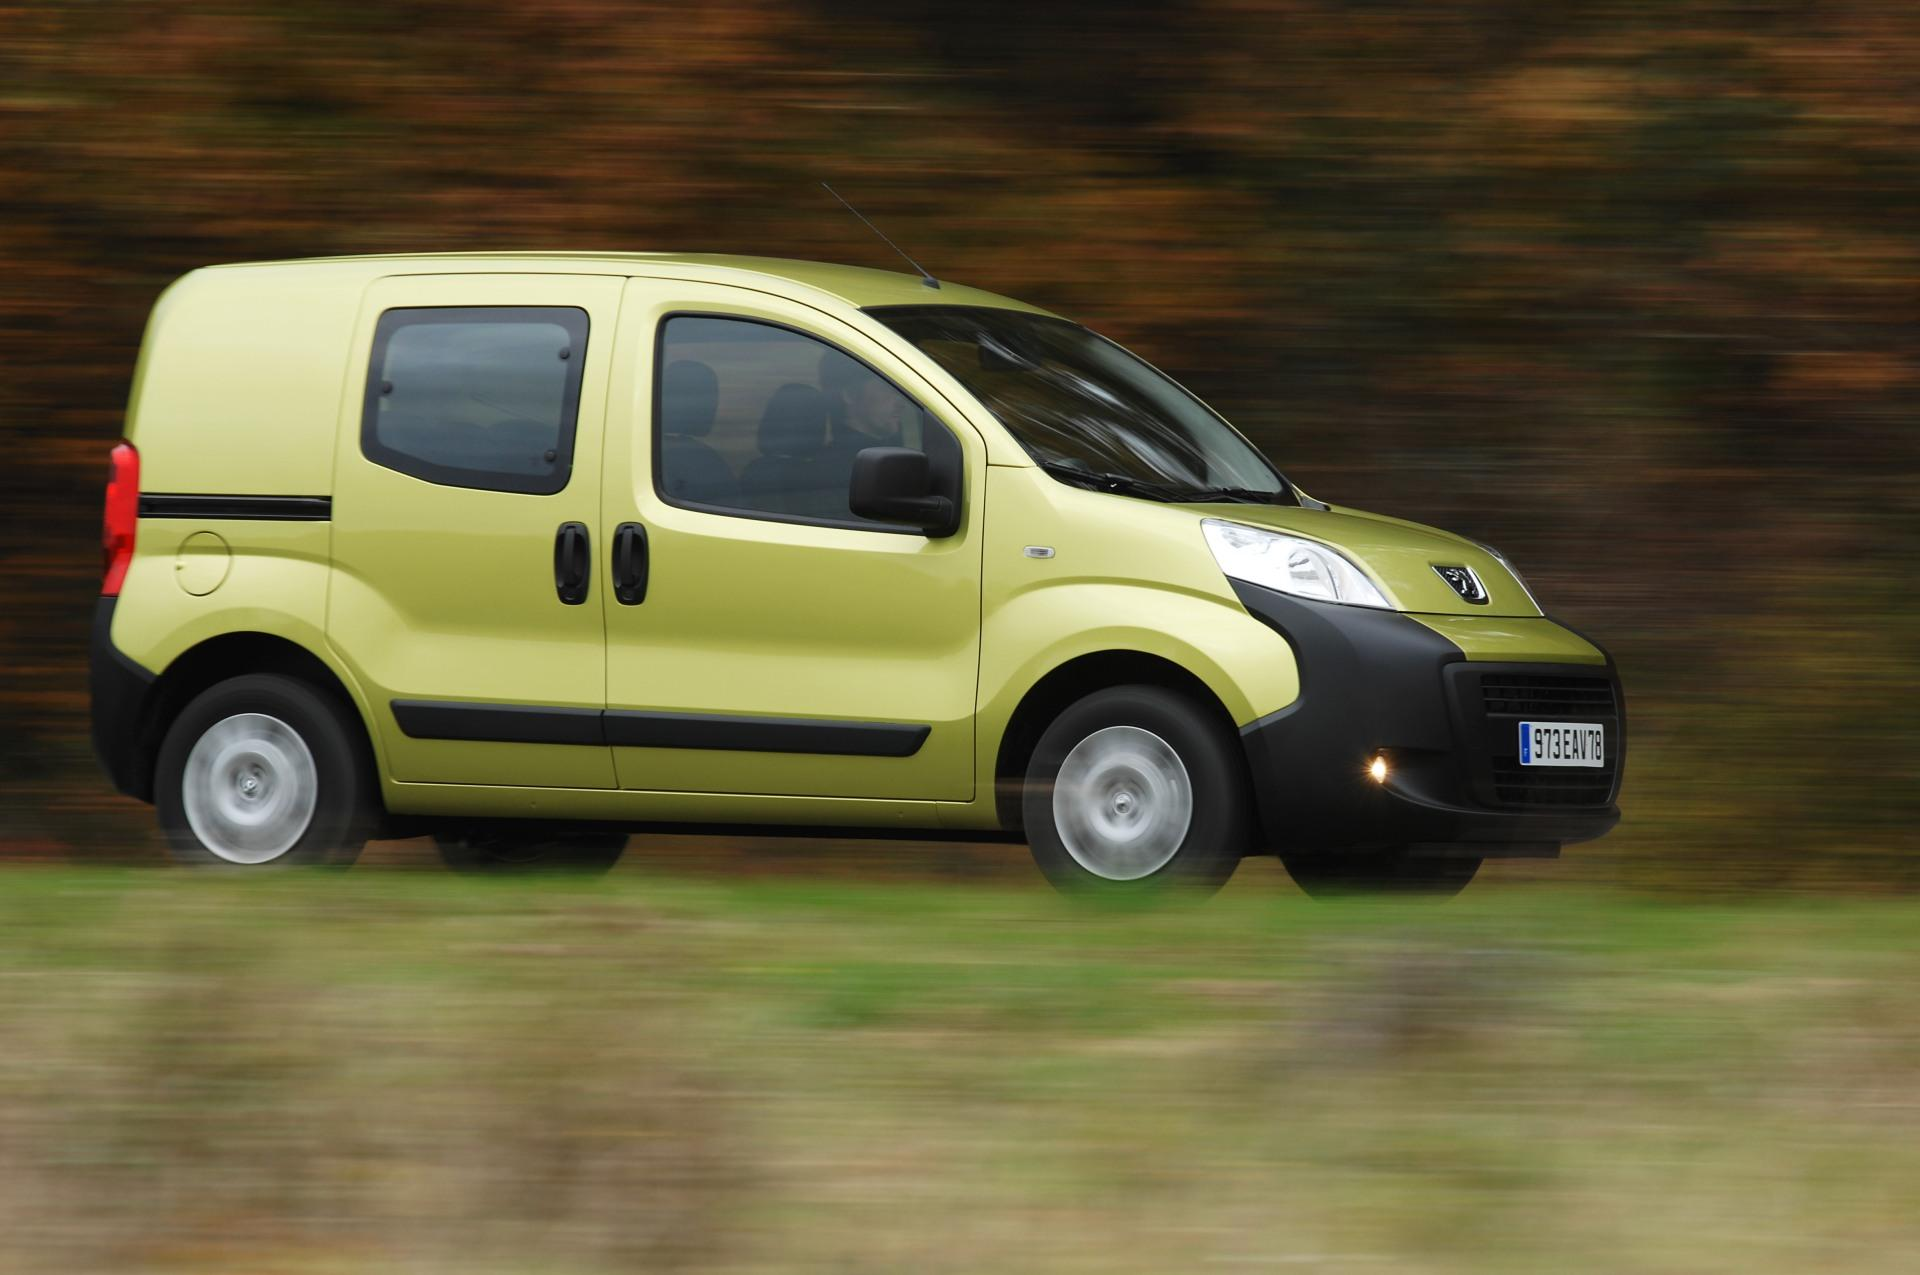 2011 Peugeot Bipper Tepee News and Information